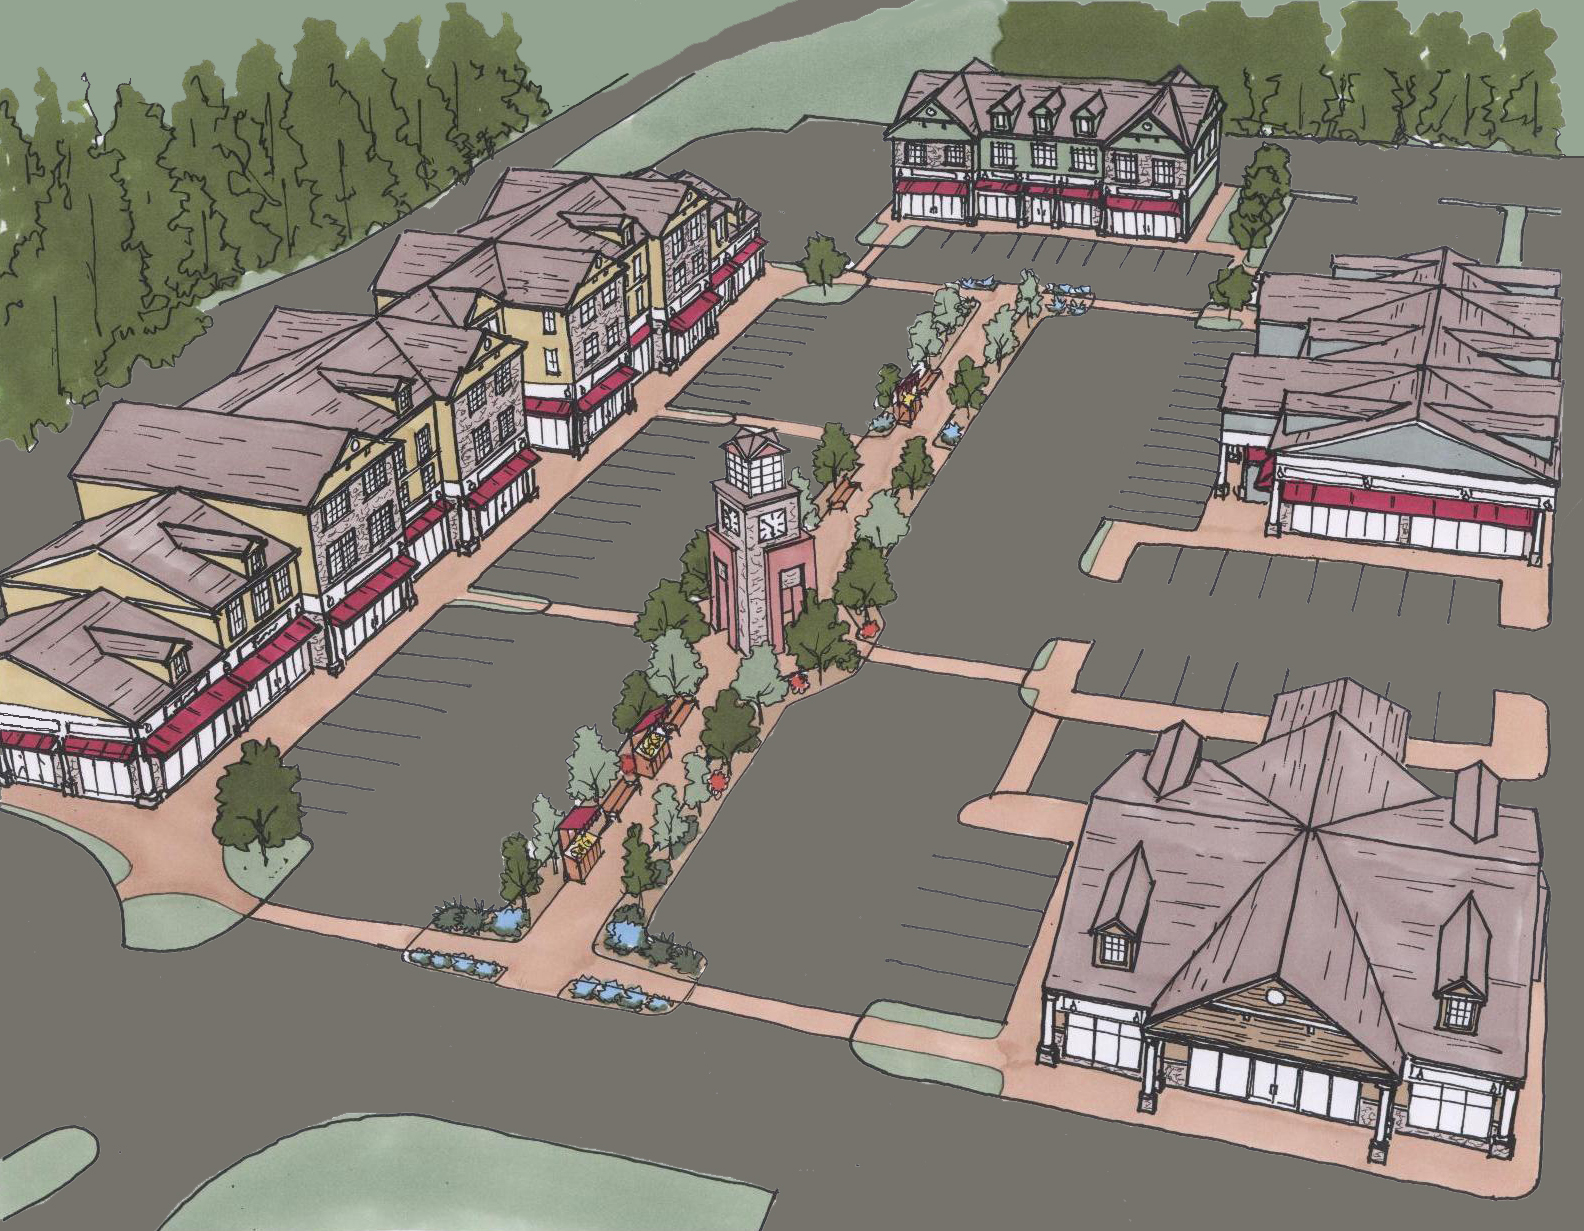 cranbury village NEW1.jpg